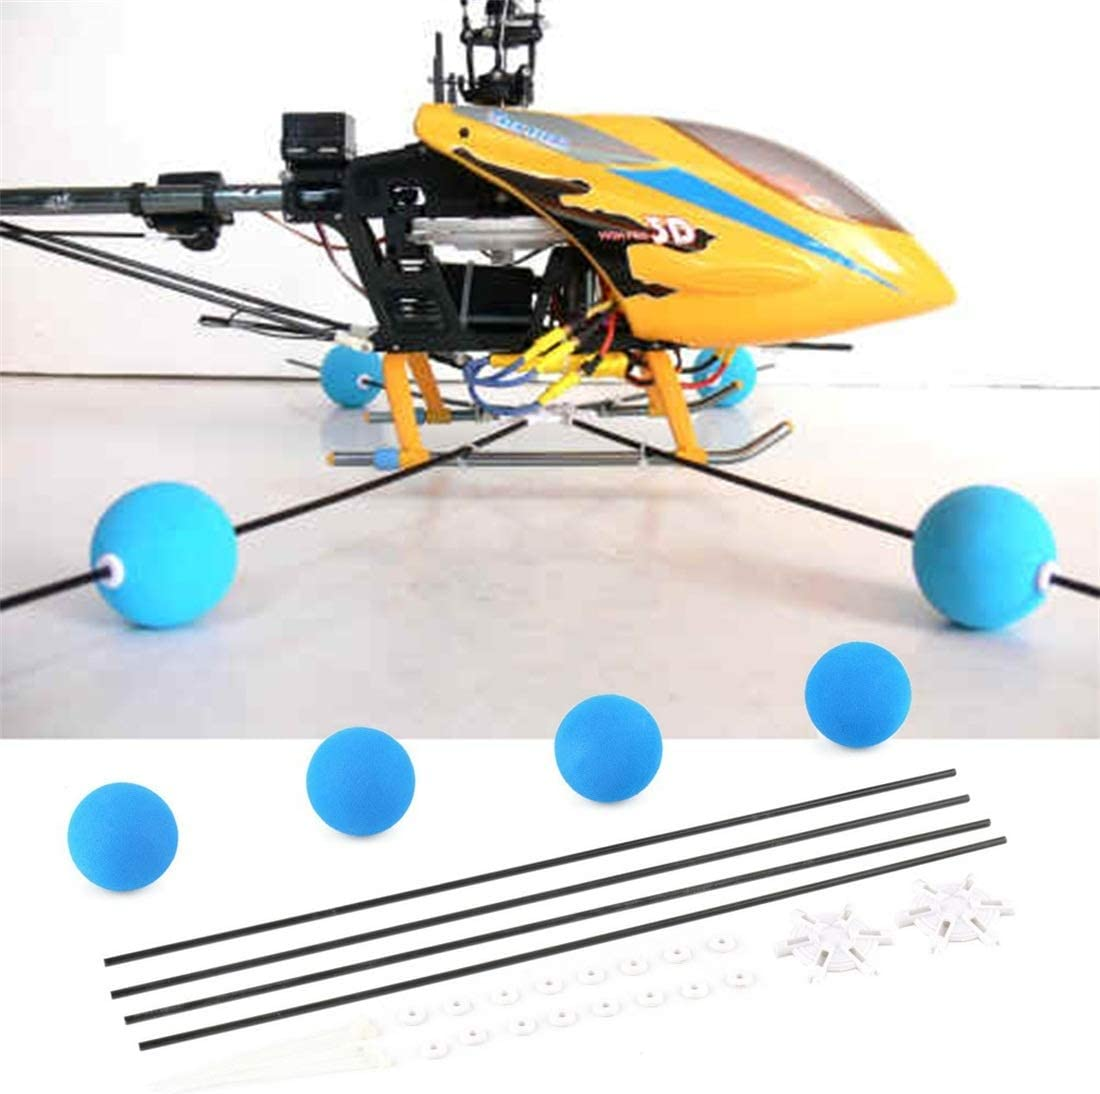 2021new shipping Max 47% OFF free Wangli Toy Hobbies 400 450 RC Control Blue Remote Helicopter Tra